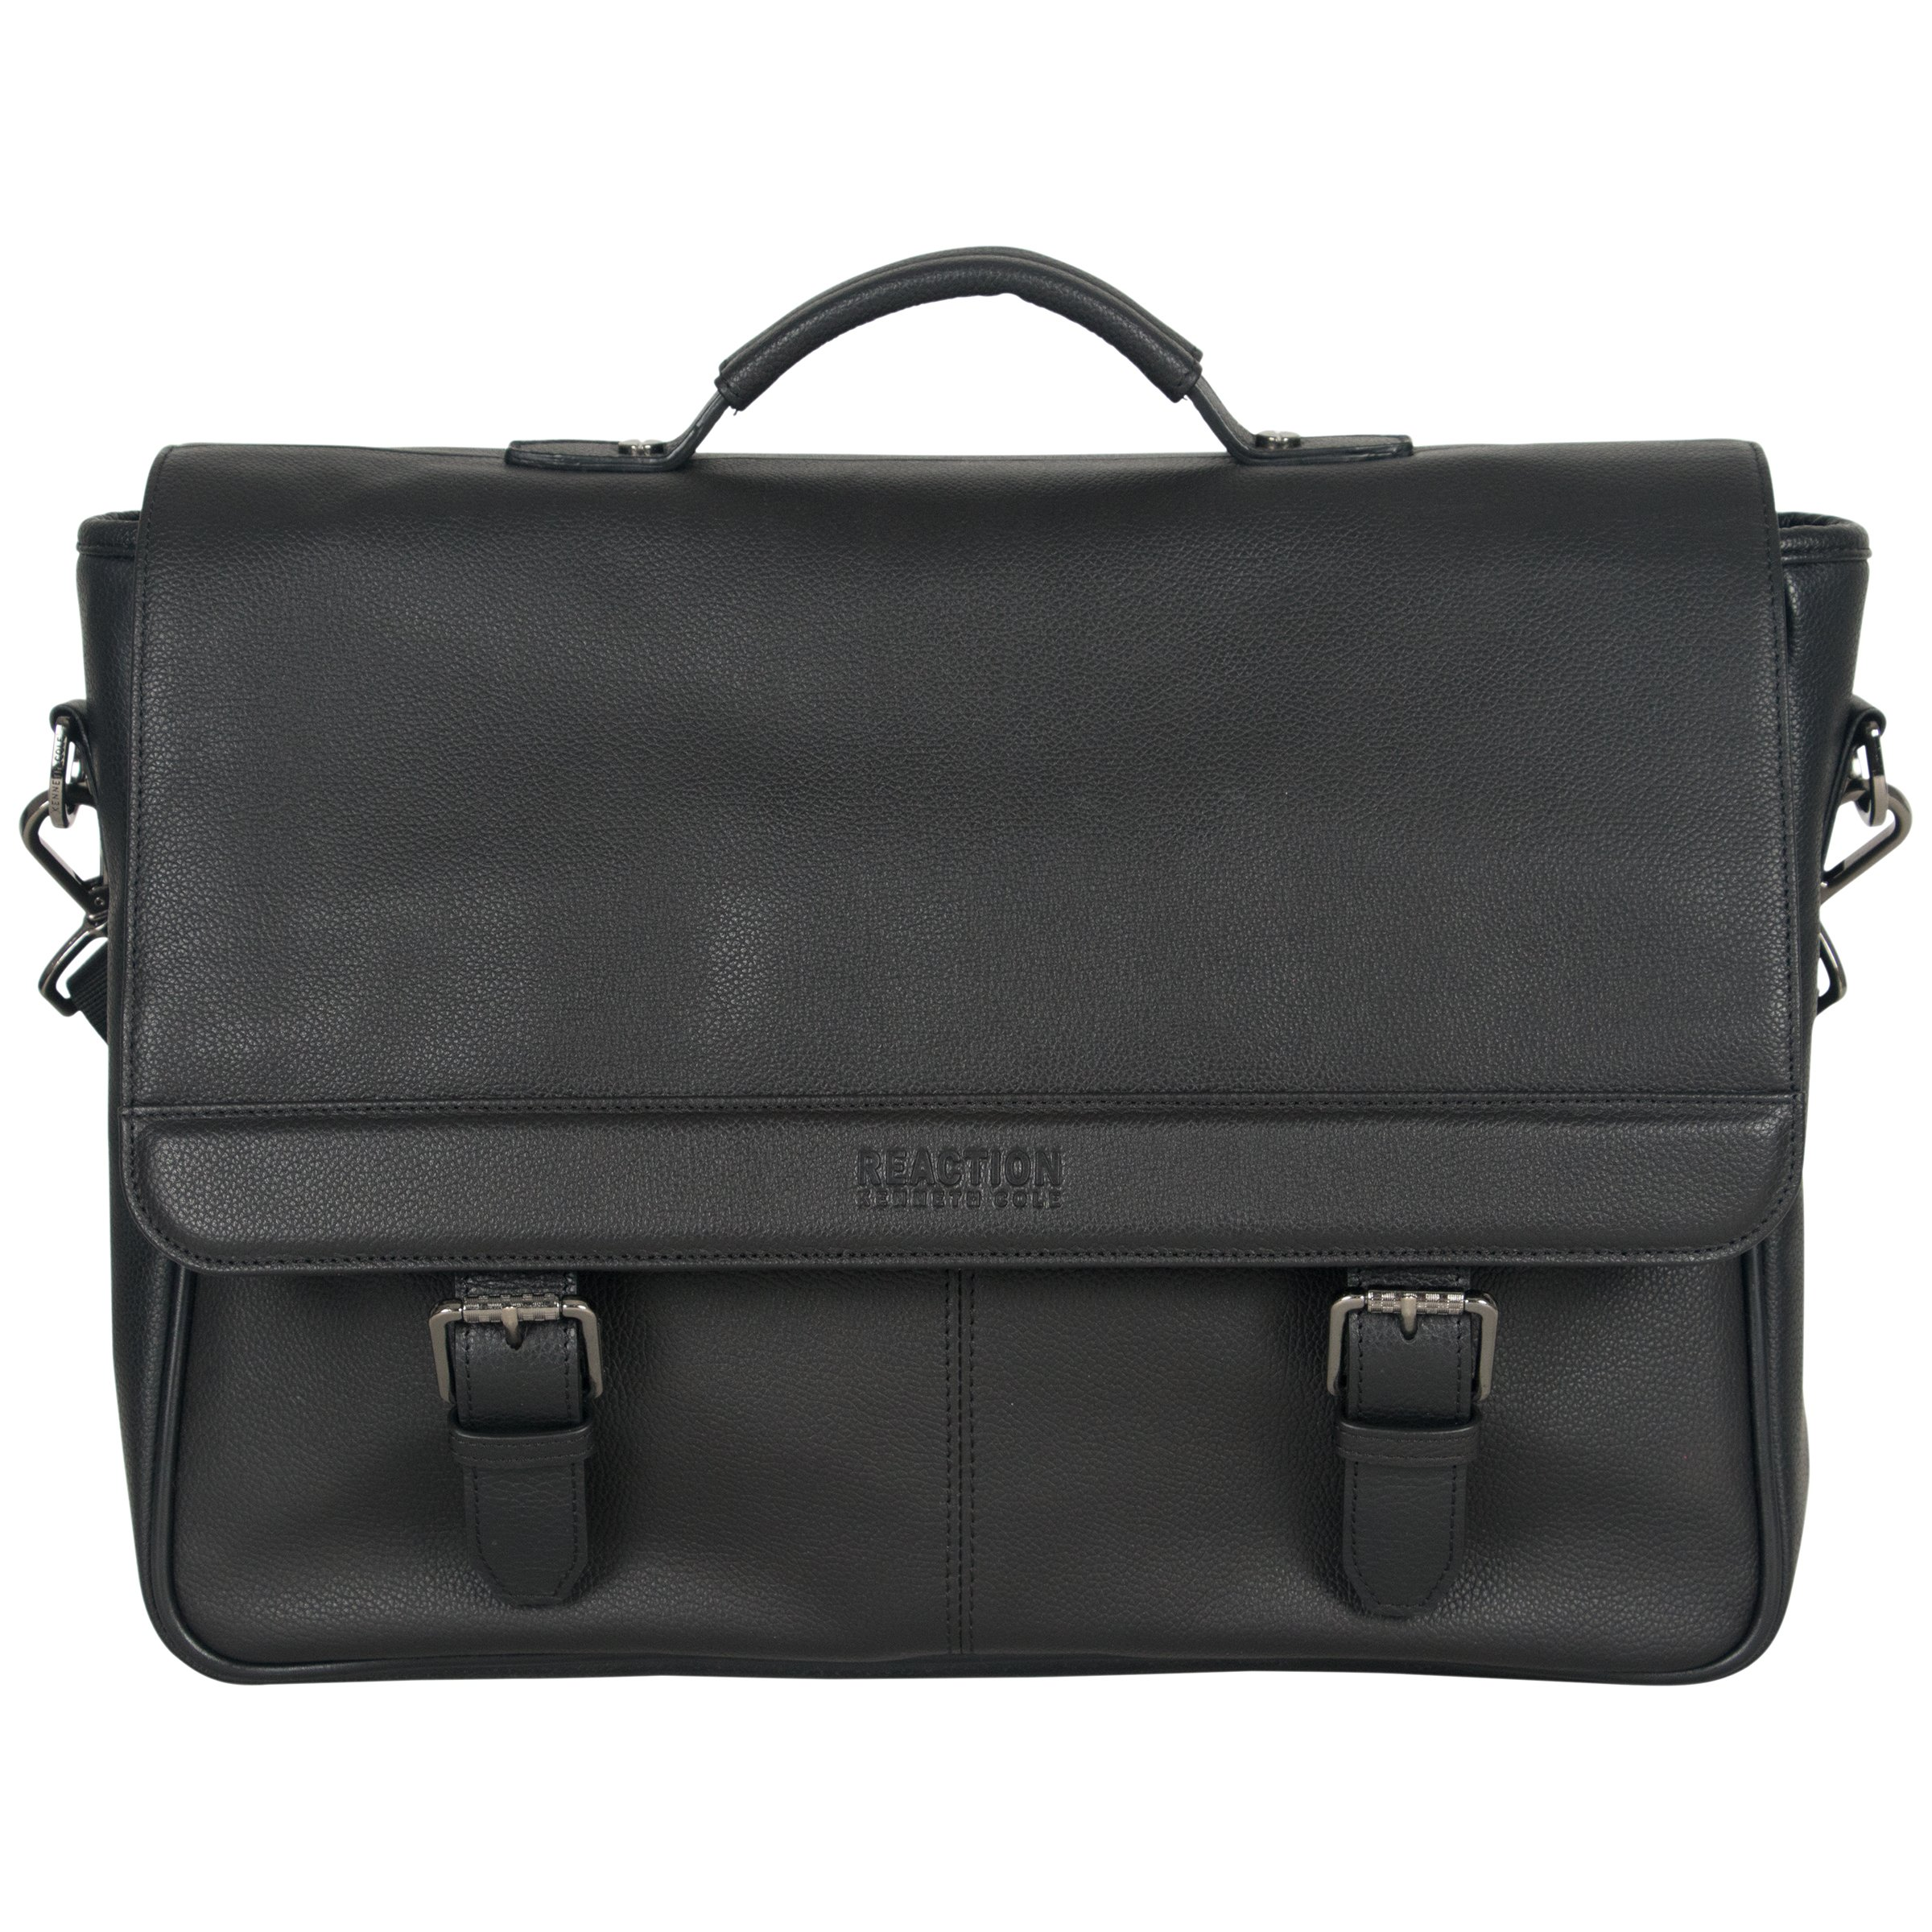 Kenneth Cole Reaction Leather Single Compartment Flapover 15.0'' Computer Business Case Laptop Briefcase, Black, One Size